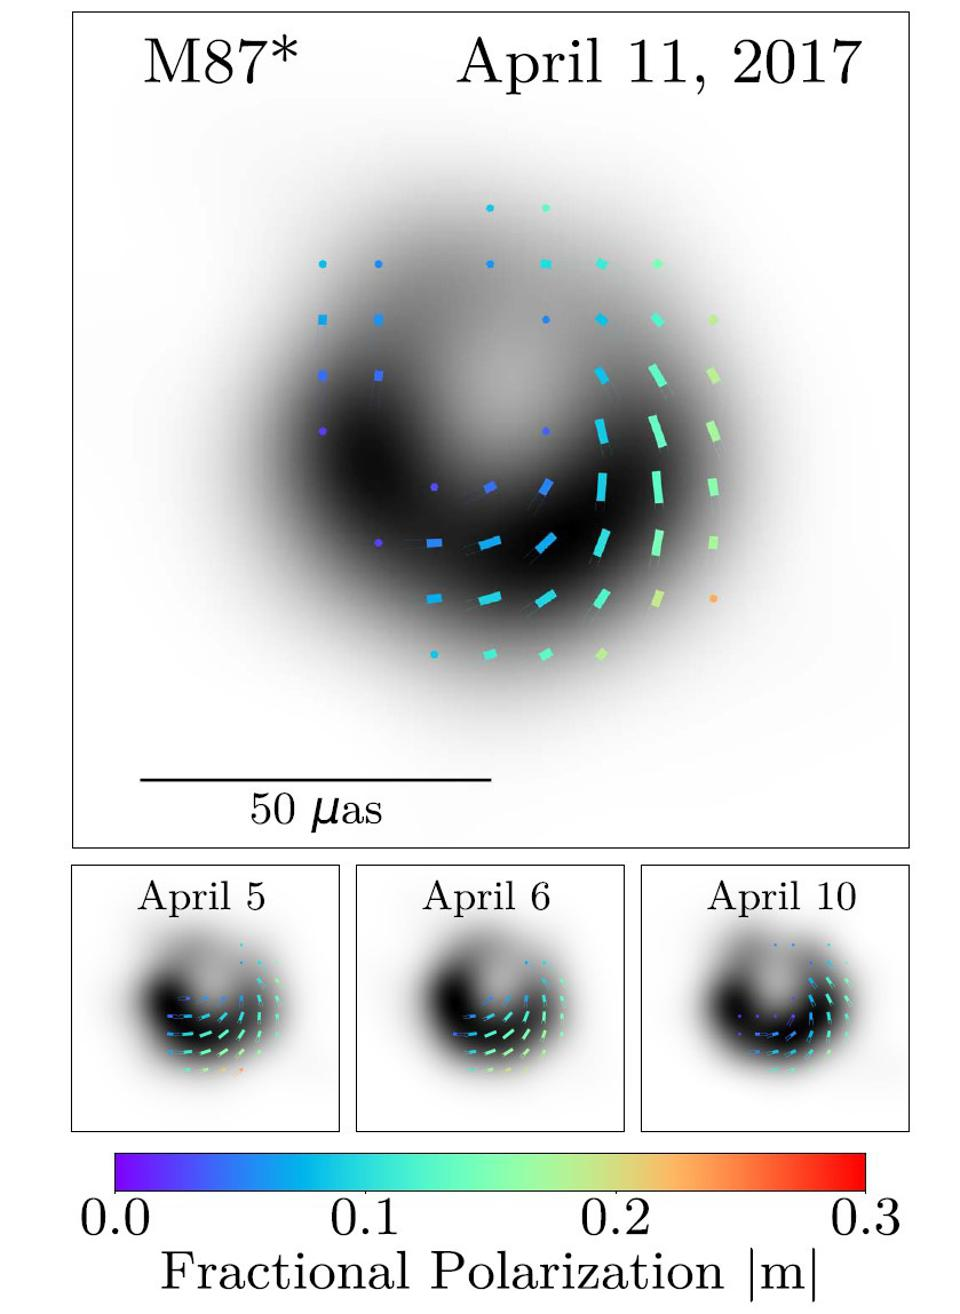 These lines trace out the polarization of the hot plasma surrounding M87's black hole.